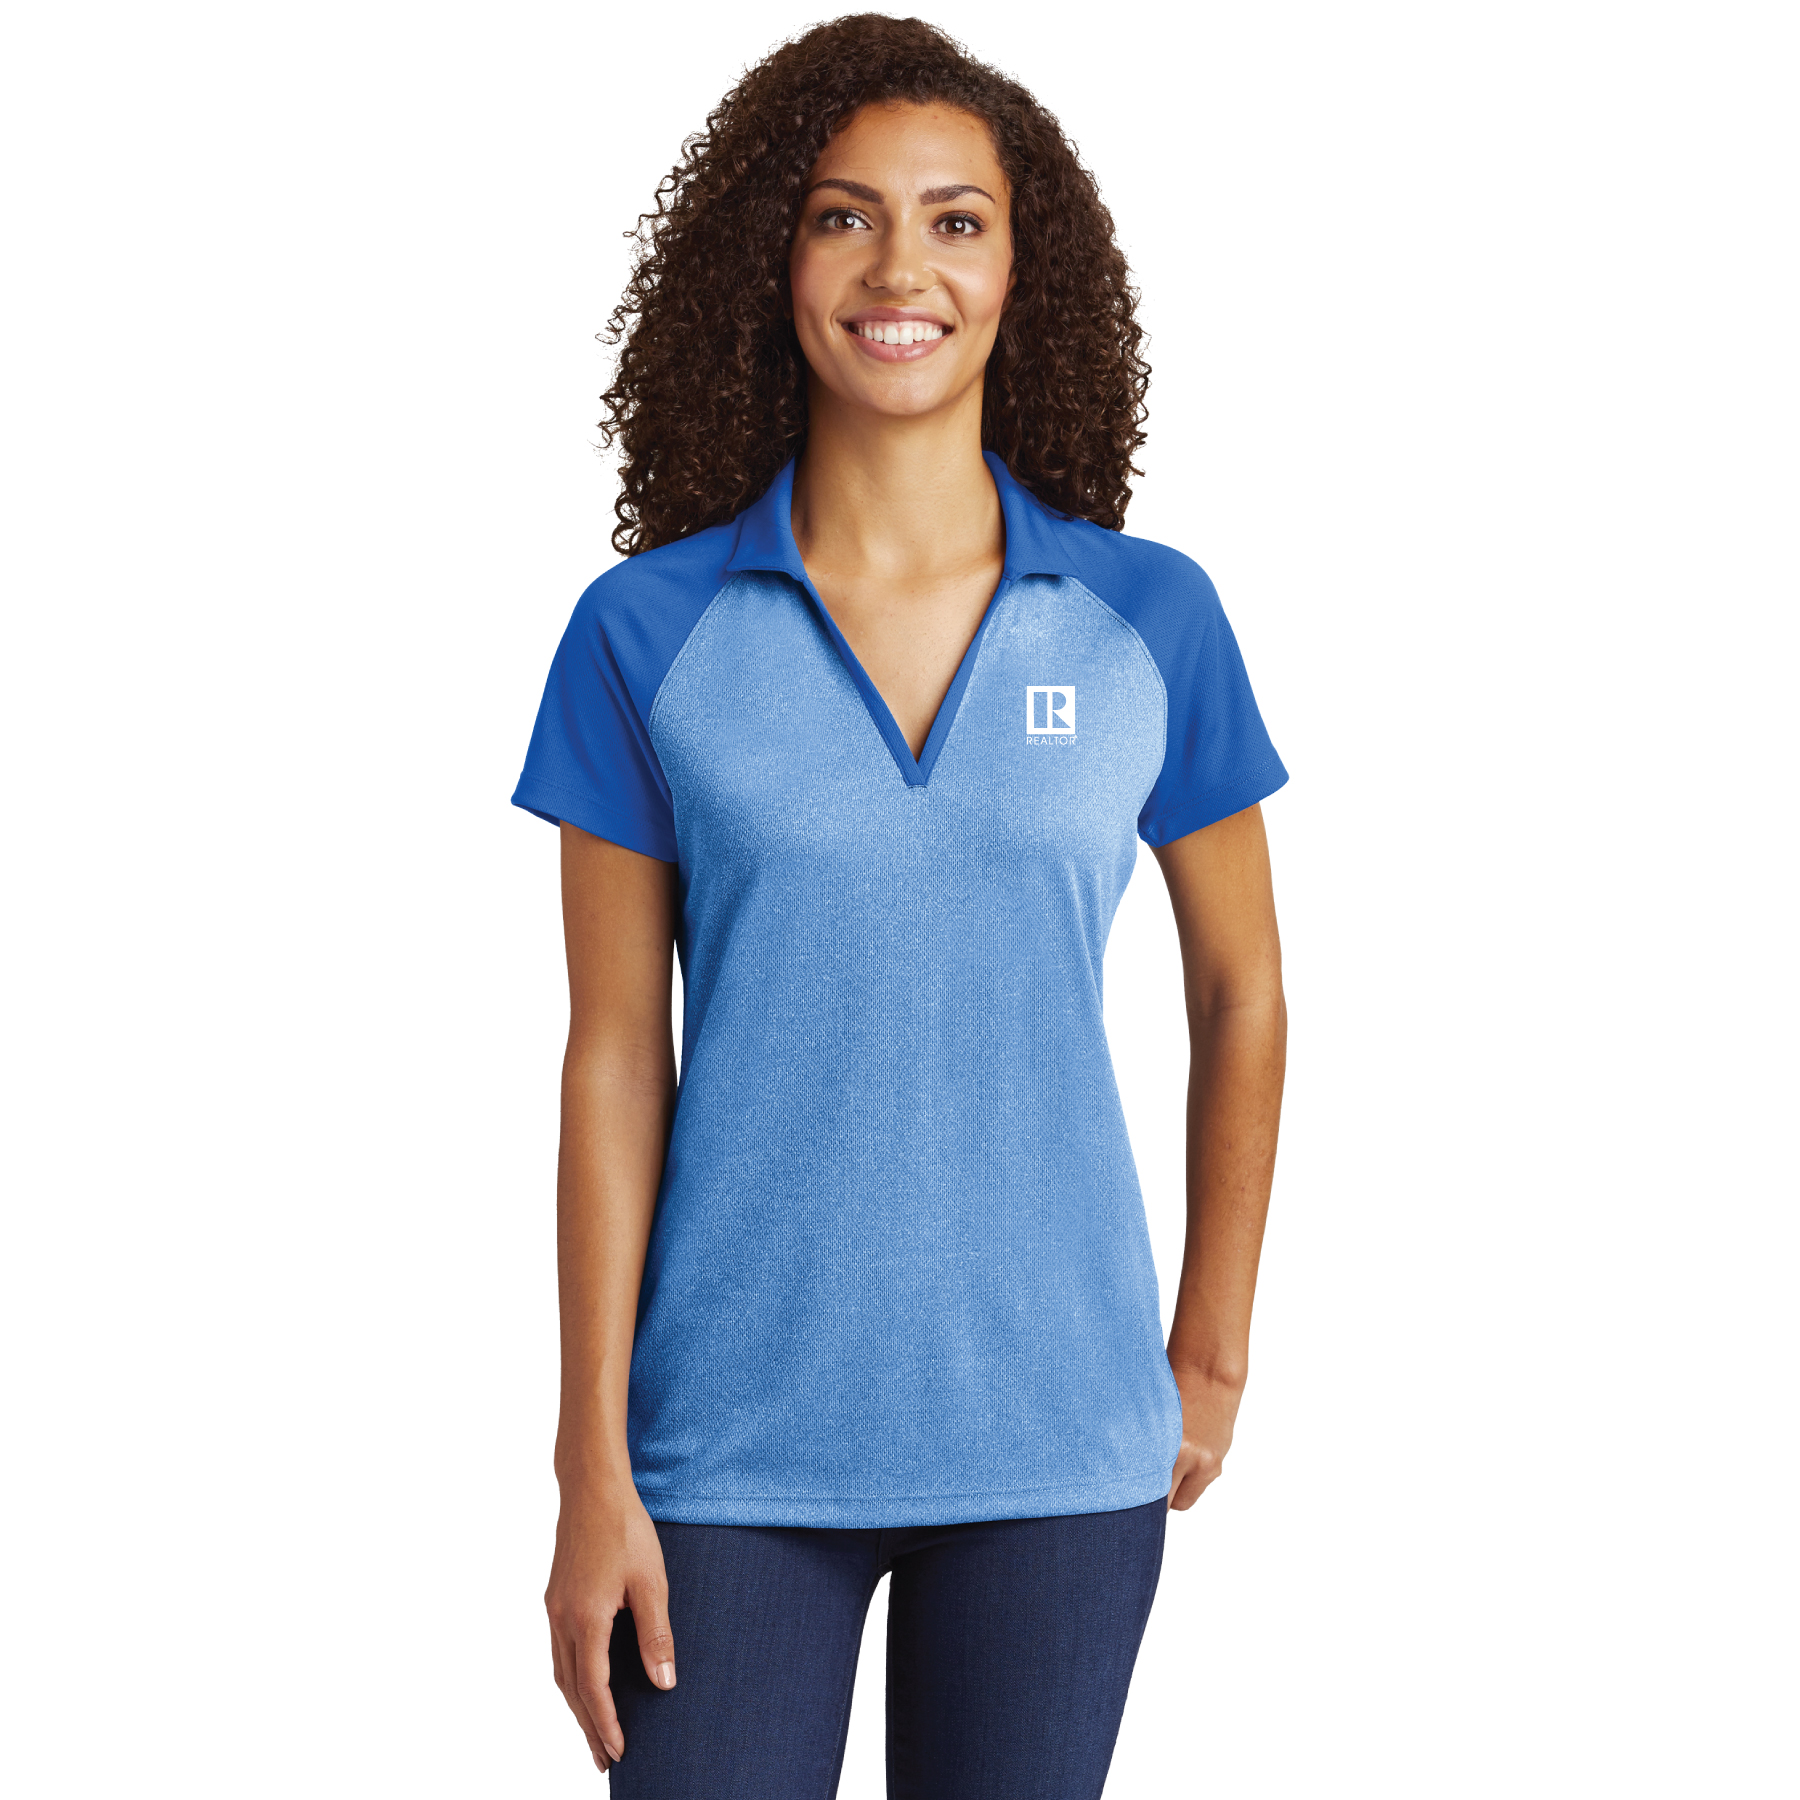 Ladies PosiCharge RacerMesh Raglan Heather Block Polo posicharge, ladies, heathers, polos, blocks